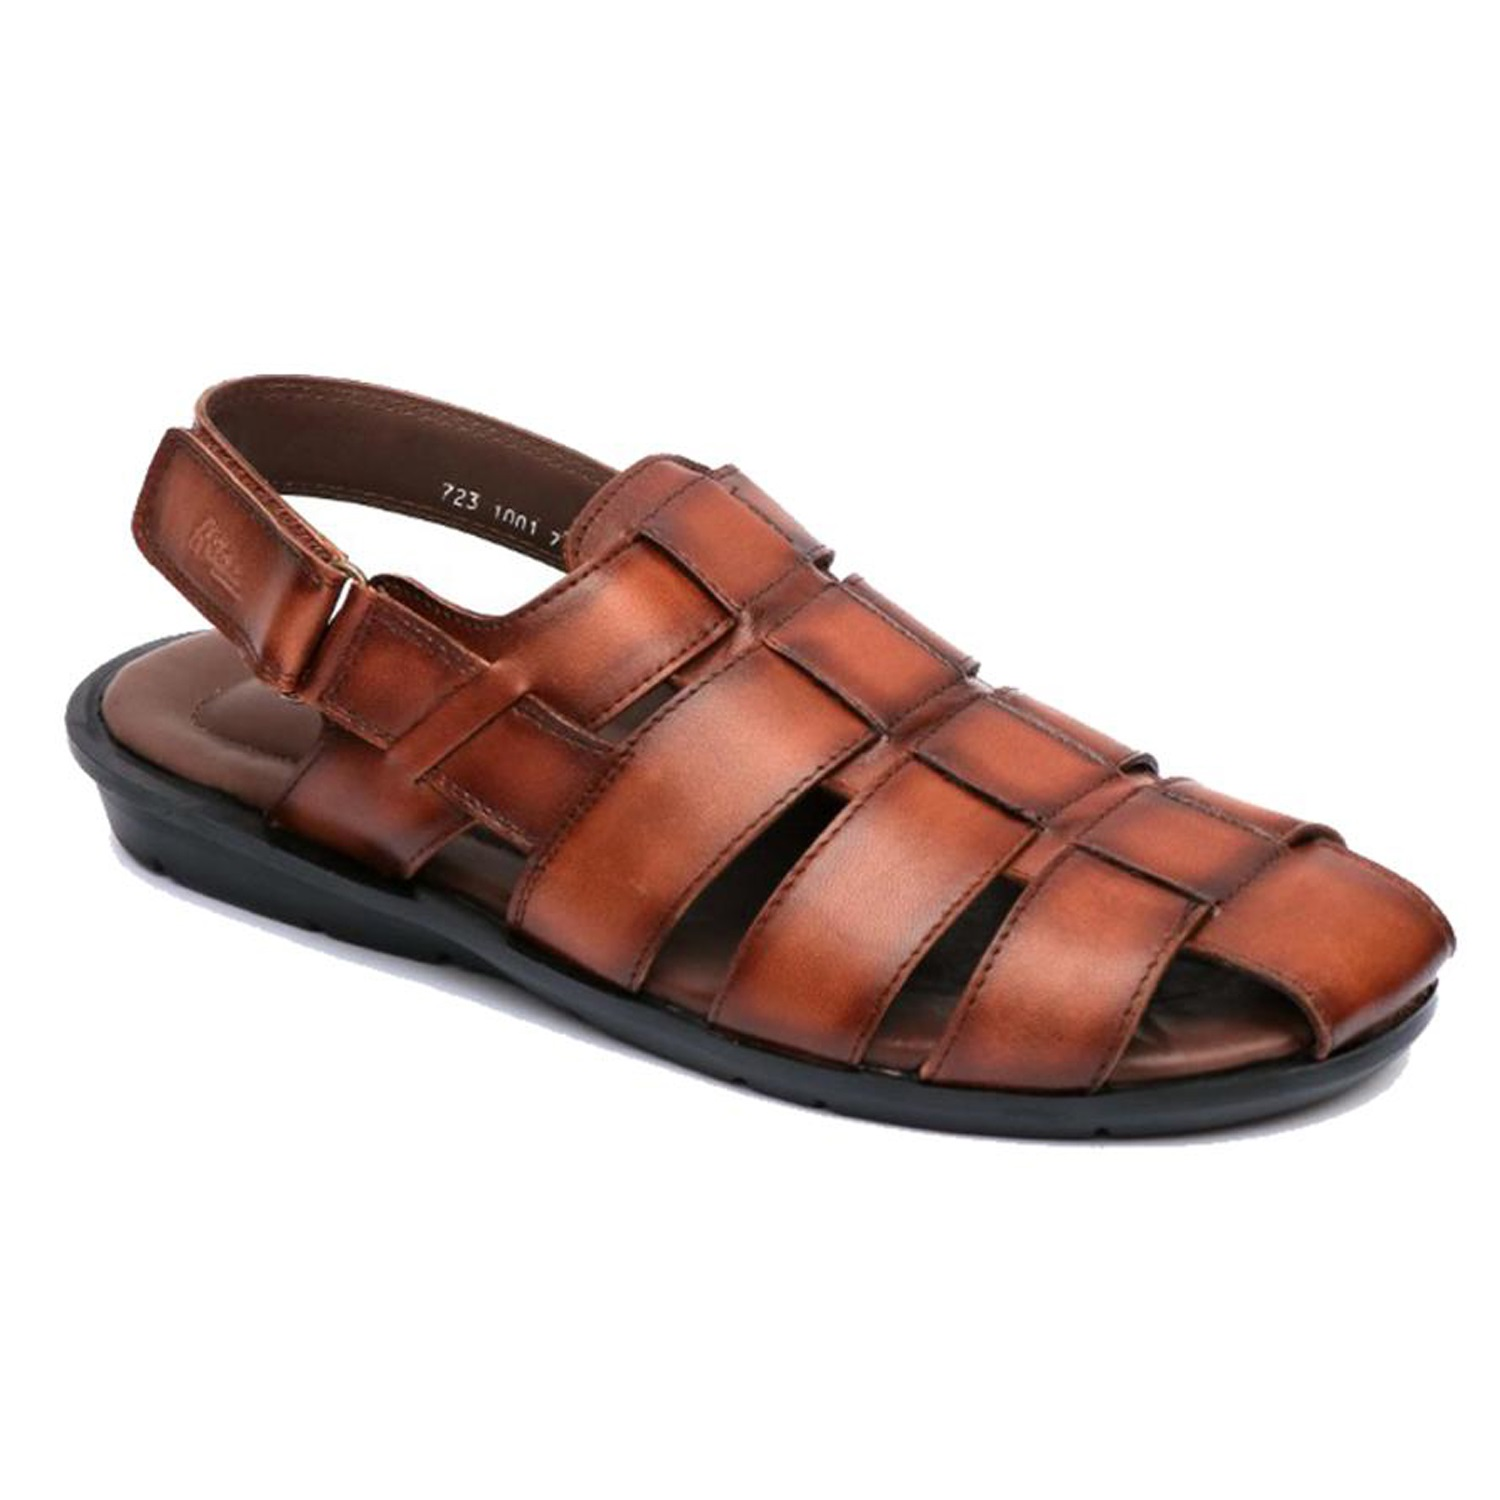 Hitz   Hitz Brown Casual Genuine Leather Sandal For Men with Velcro Fastening